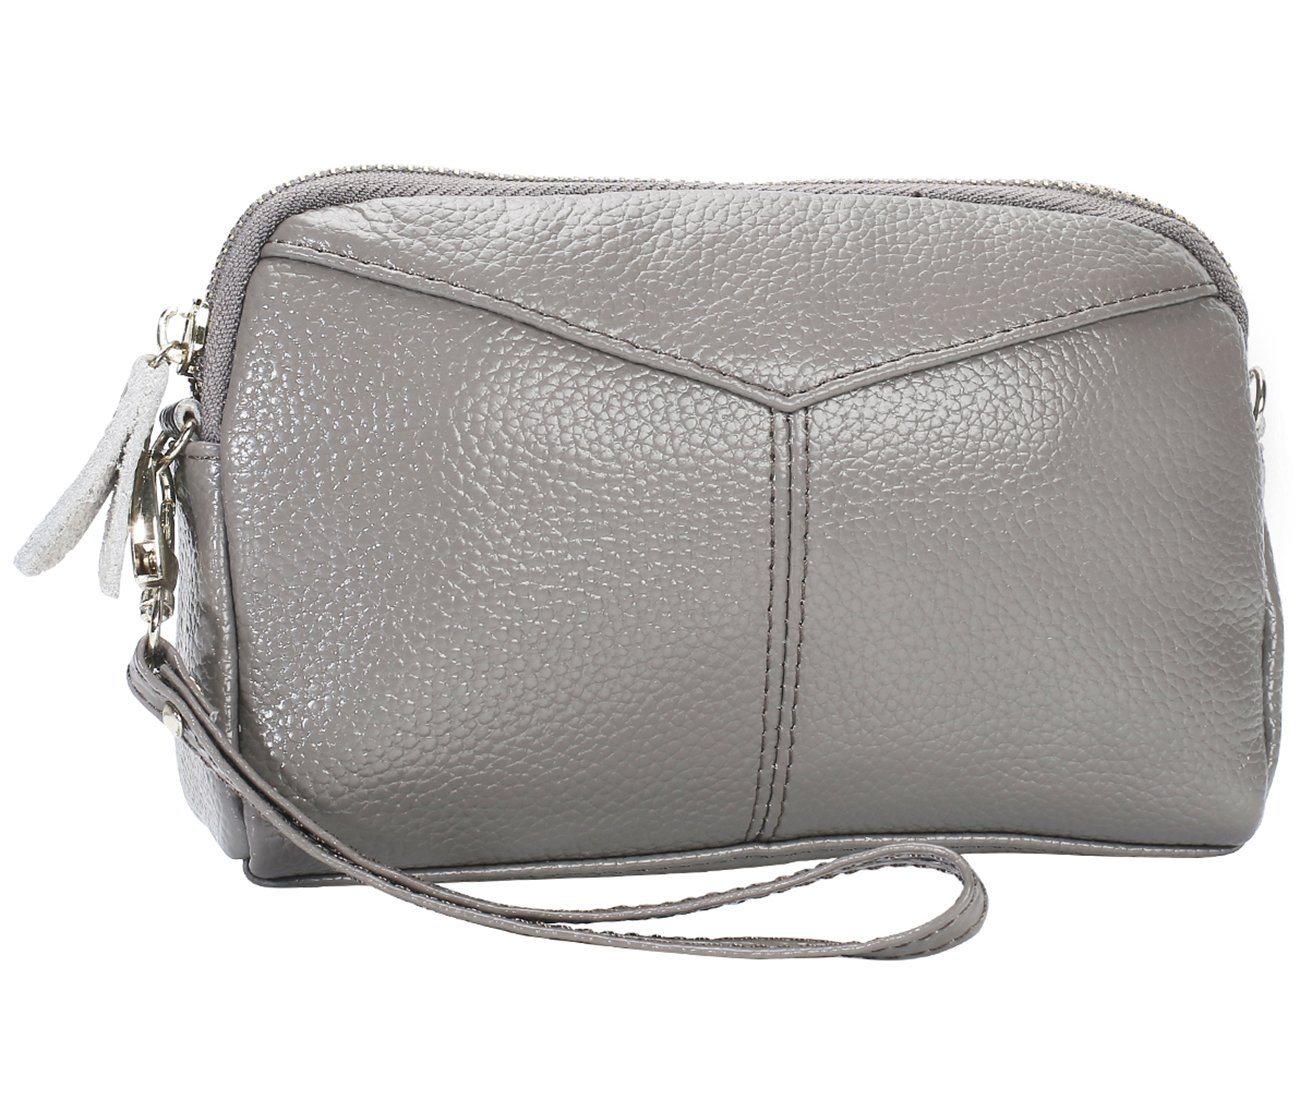 Women's Smartphone Soft Leather Wristlet Purse/Clutch Wallet/Crossbody Bag with Crossbody Strap&Wrist Strap (Gray)